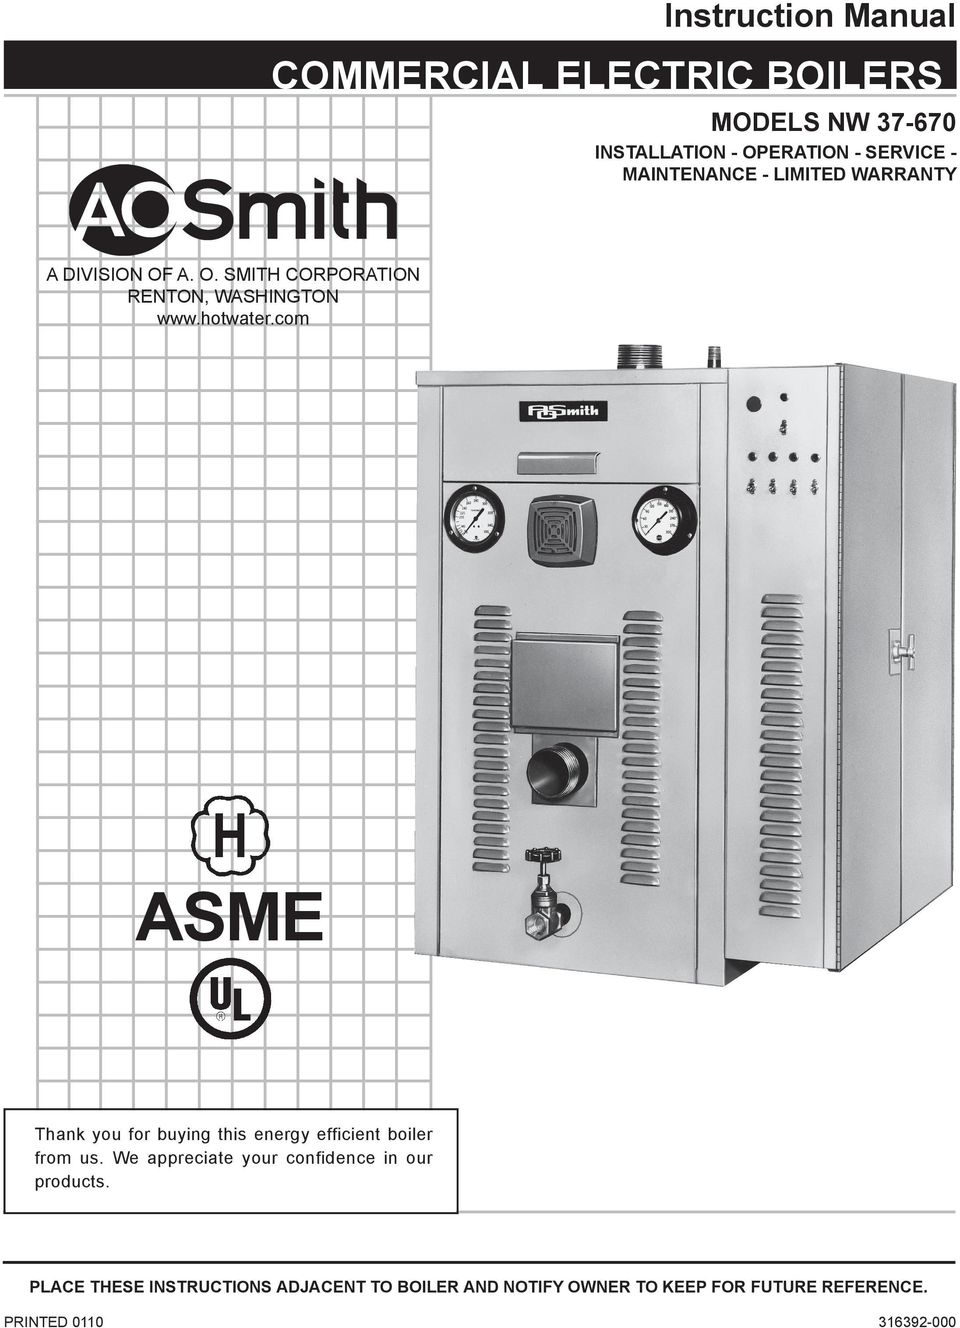 hight resolution of com asme thank you for buying this energy efficient boiler from us